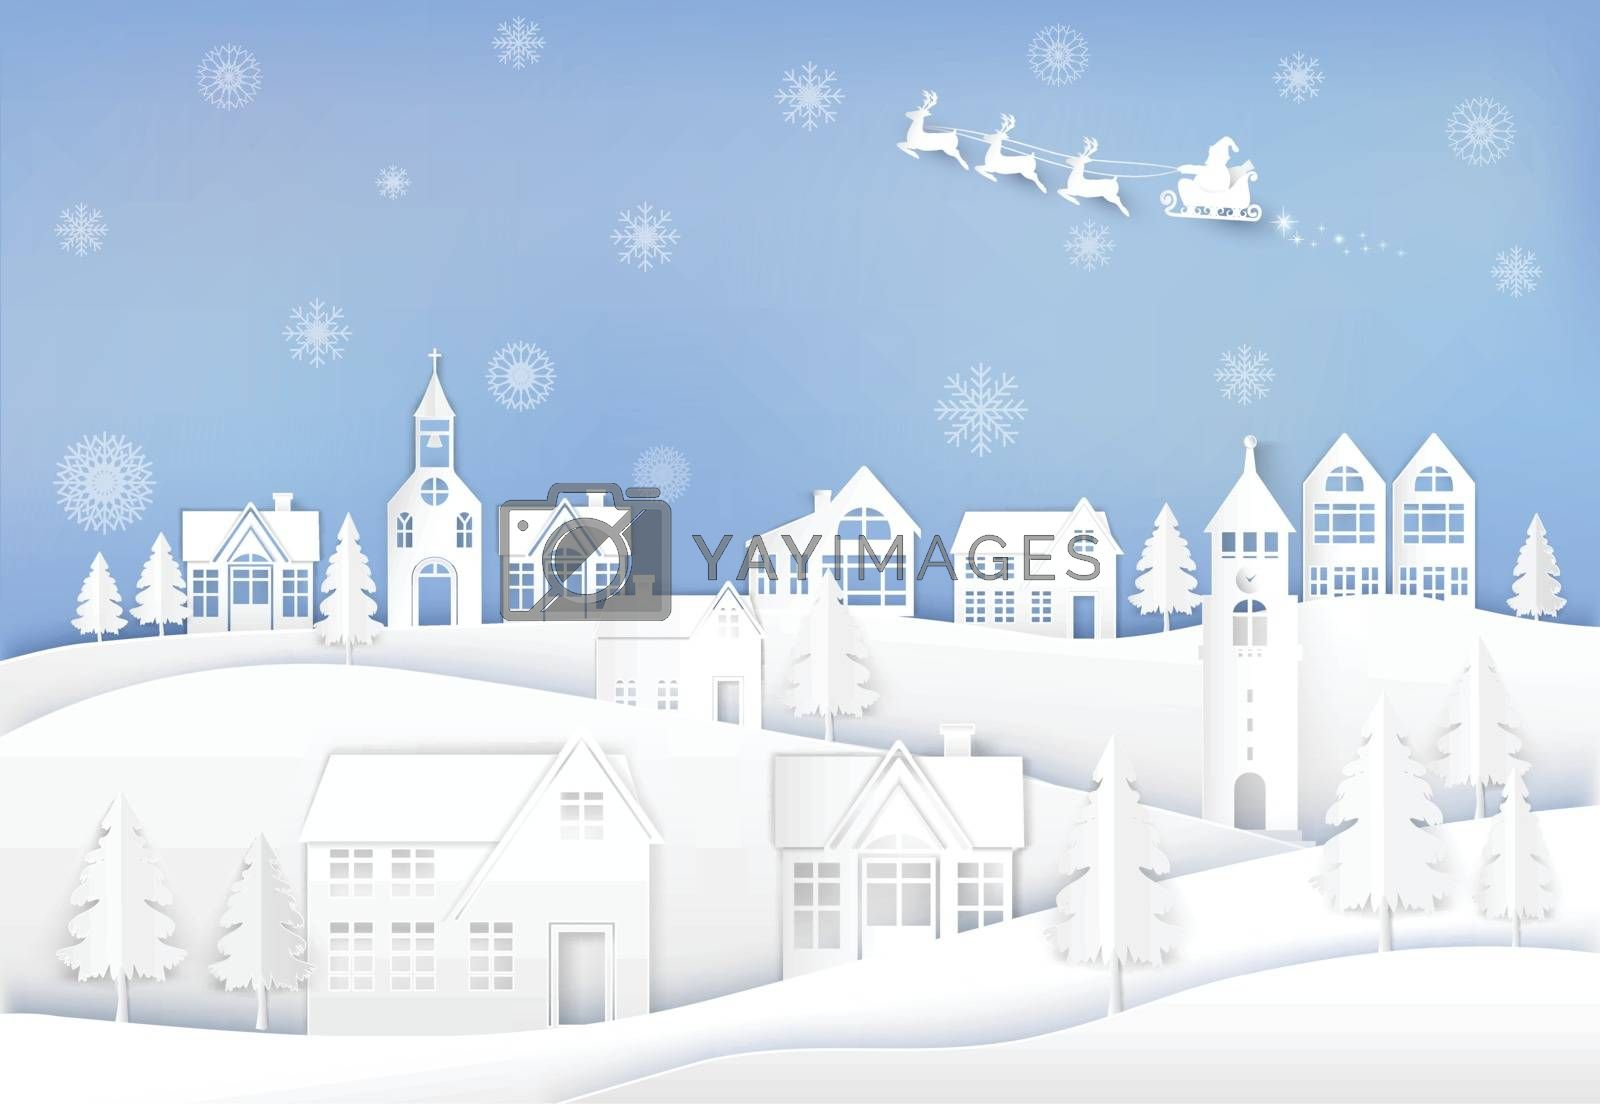 Winter holiday Santa and deer in city town with snowflake background. Christmas season paper art style illustration.